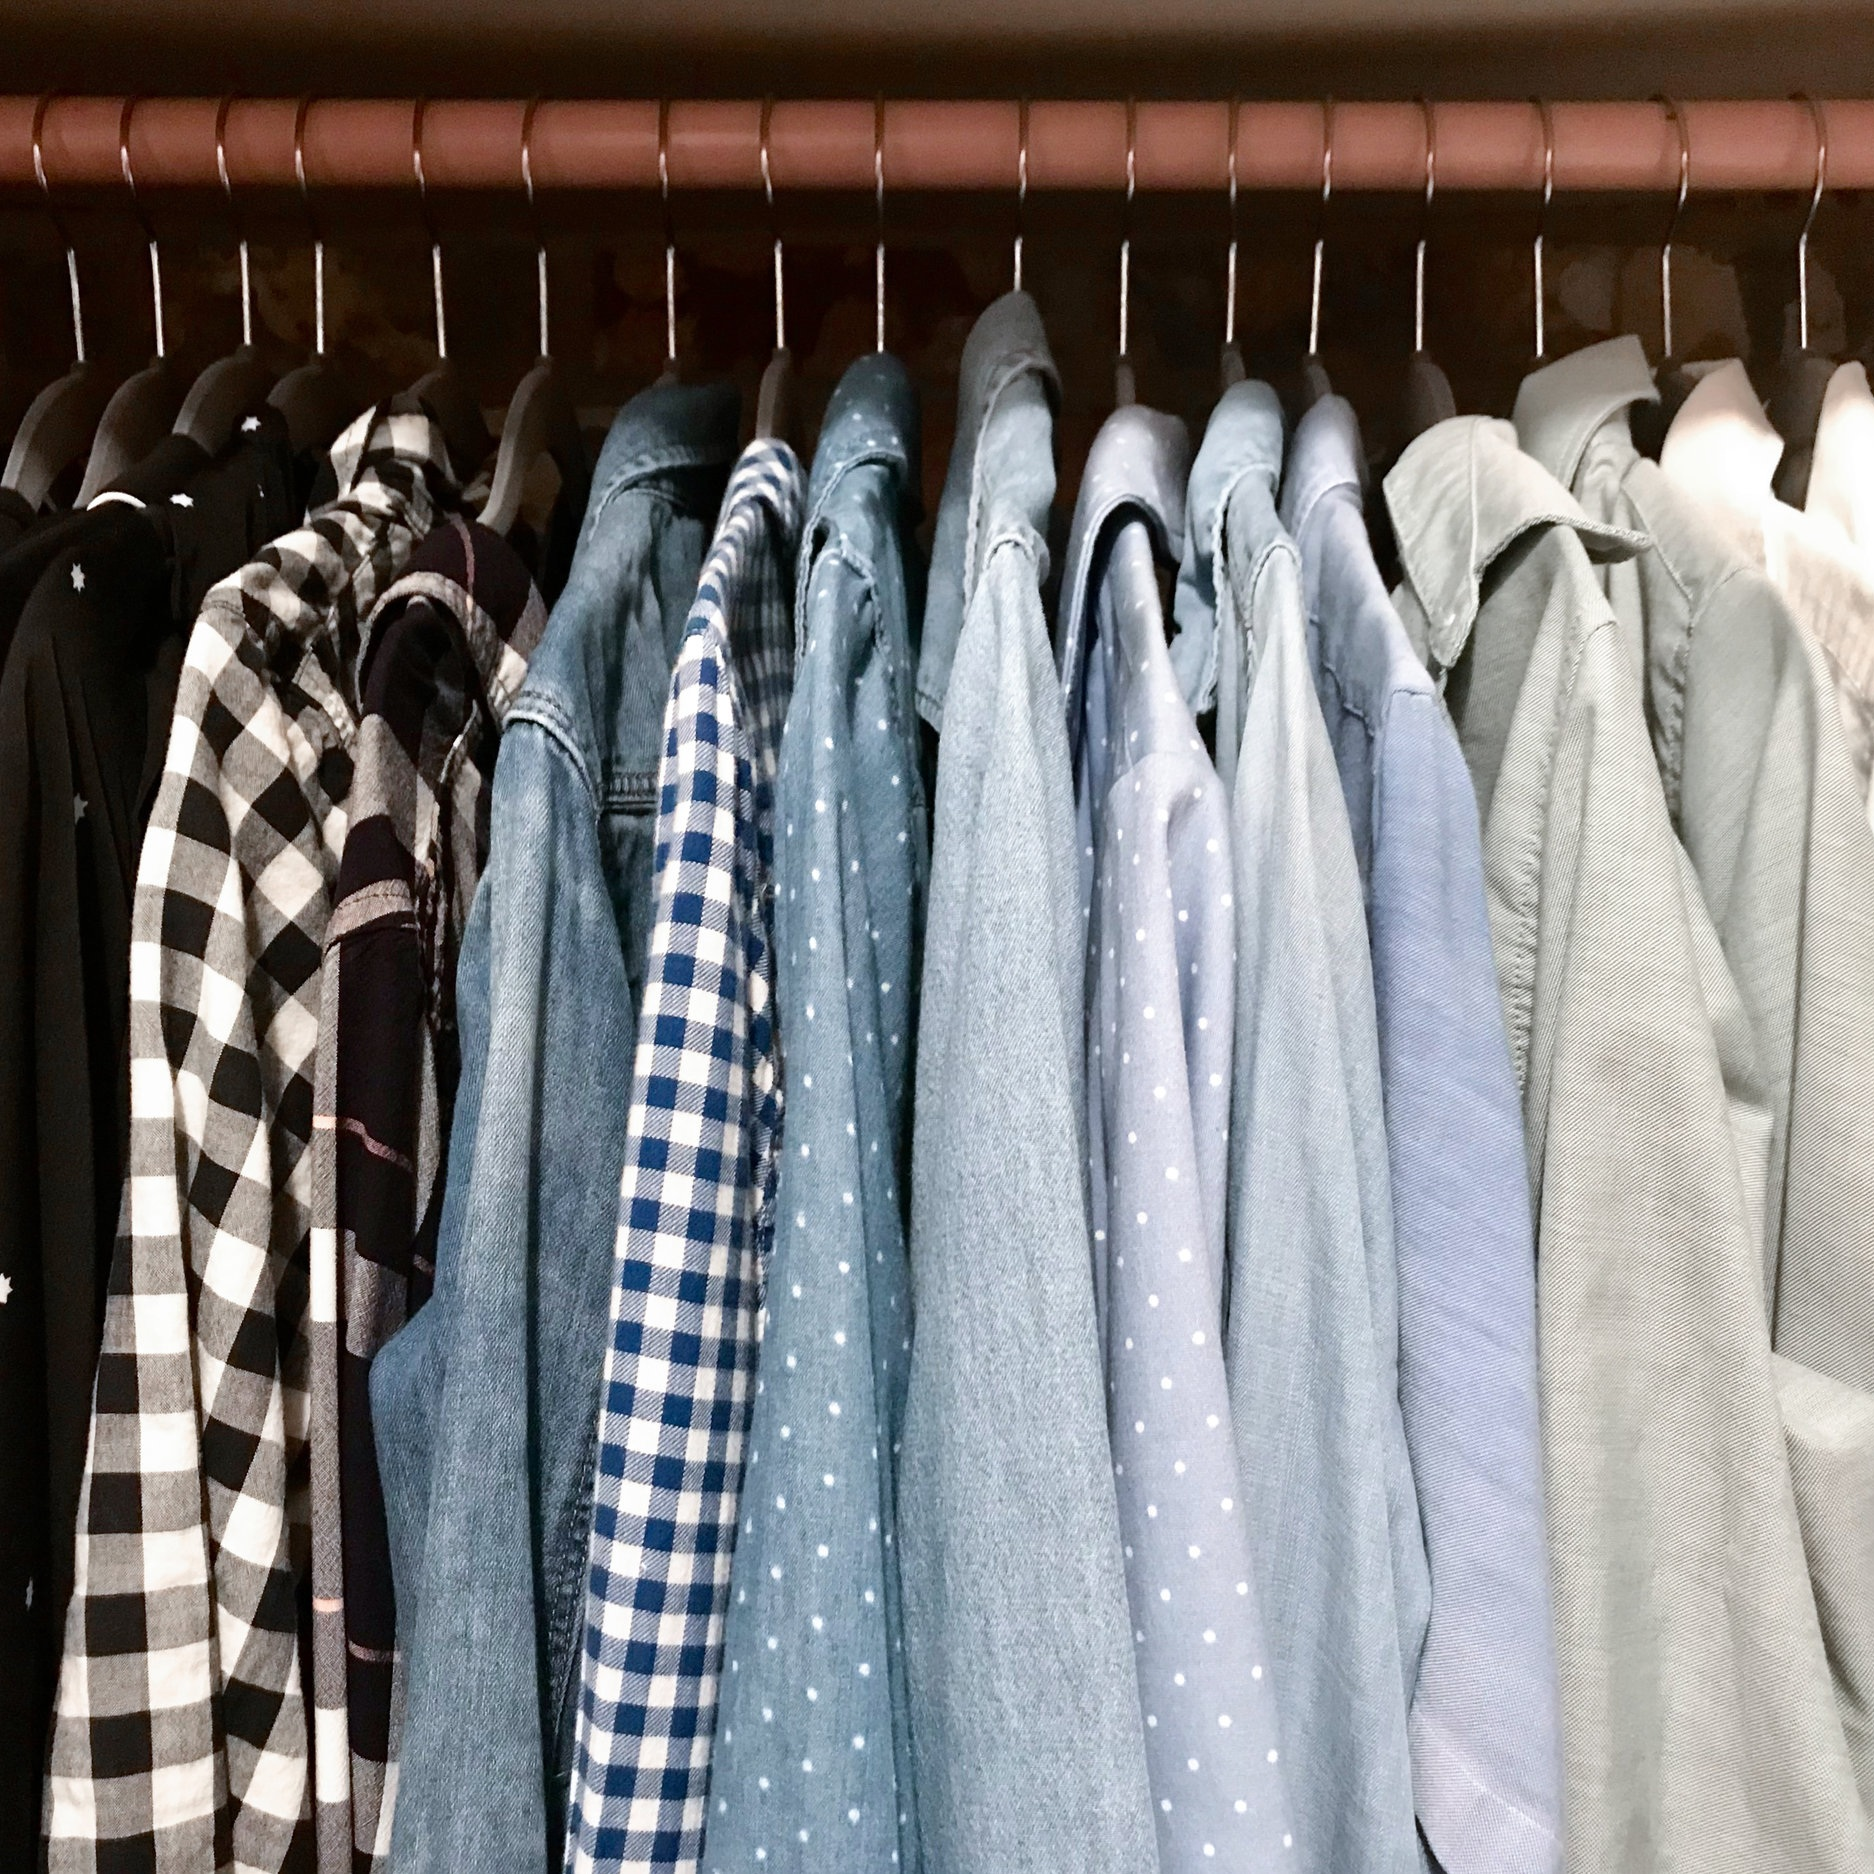 Color-coded+shirts+in+a+closet